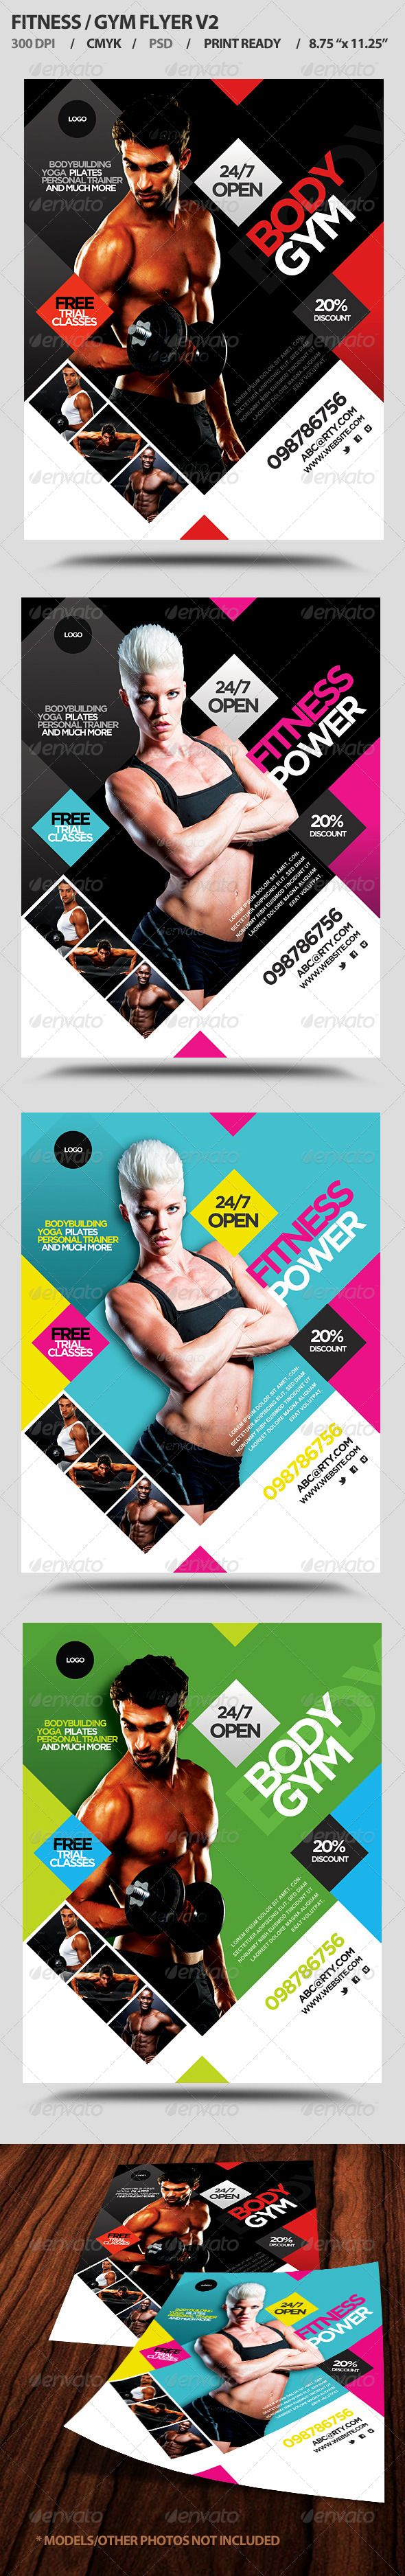 fitness gym business promotion flyer v flyers design fitness gym business promotion flyer v2 flyers